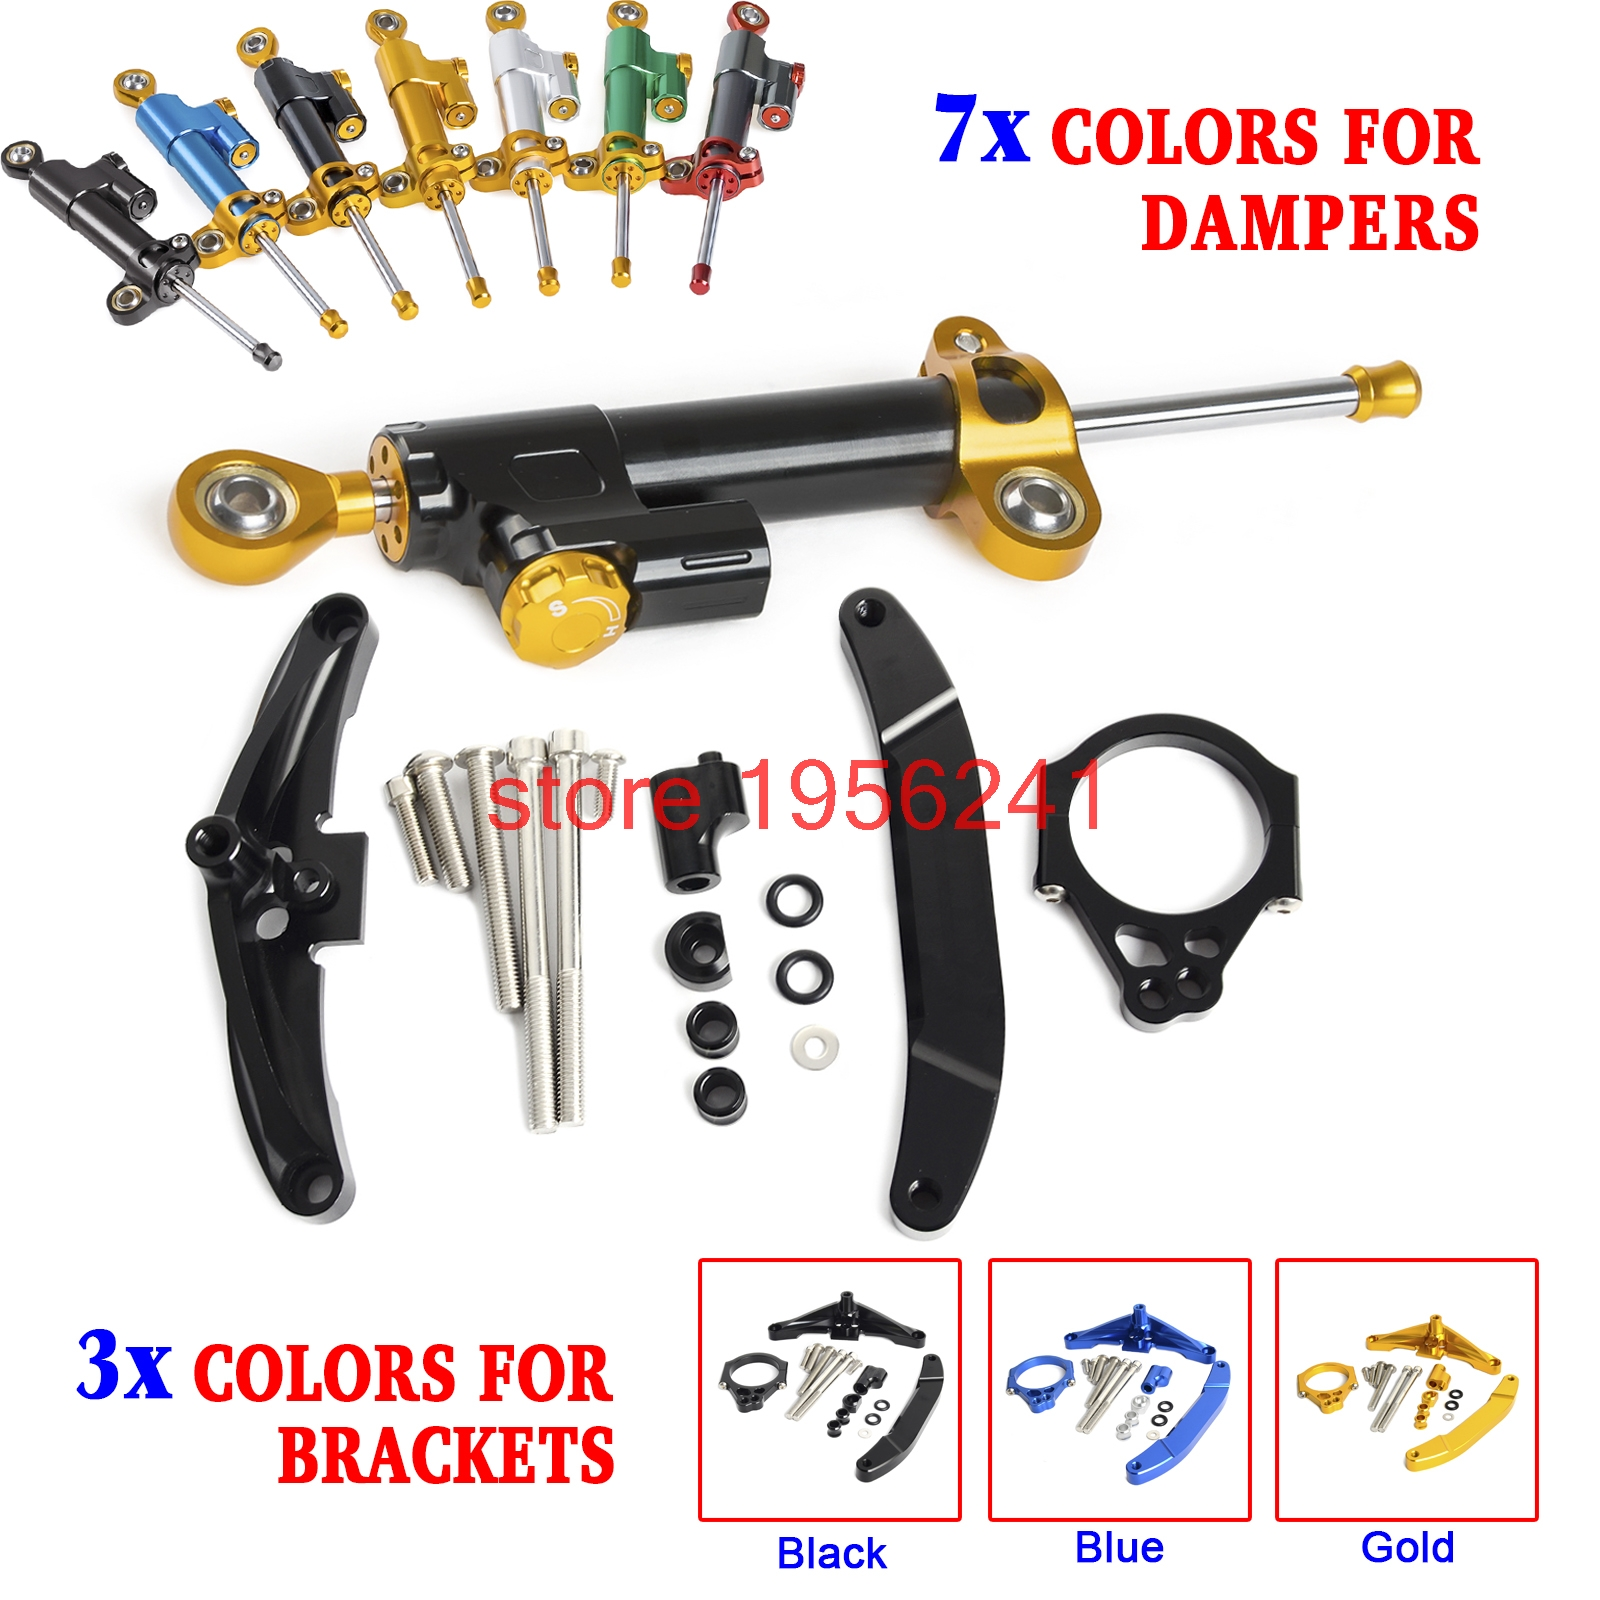 Motorcycle Steering Damper Mounting Bracket Kit for Yamaha  FZ1 Fazer 2006 - 2015 2007 2008 2009 2010 2011 2012 2013 2014 motorcycle cnc steering damper mounting bracket for yamaha fz1 fazer 2006 2007 2008 2015